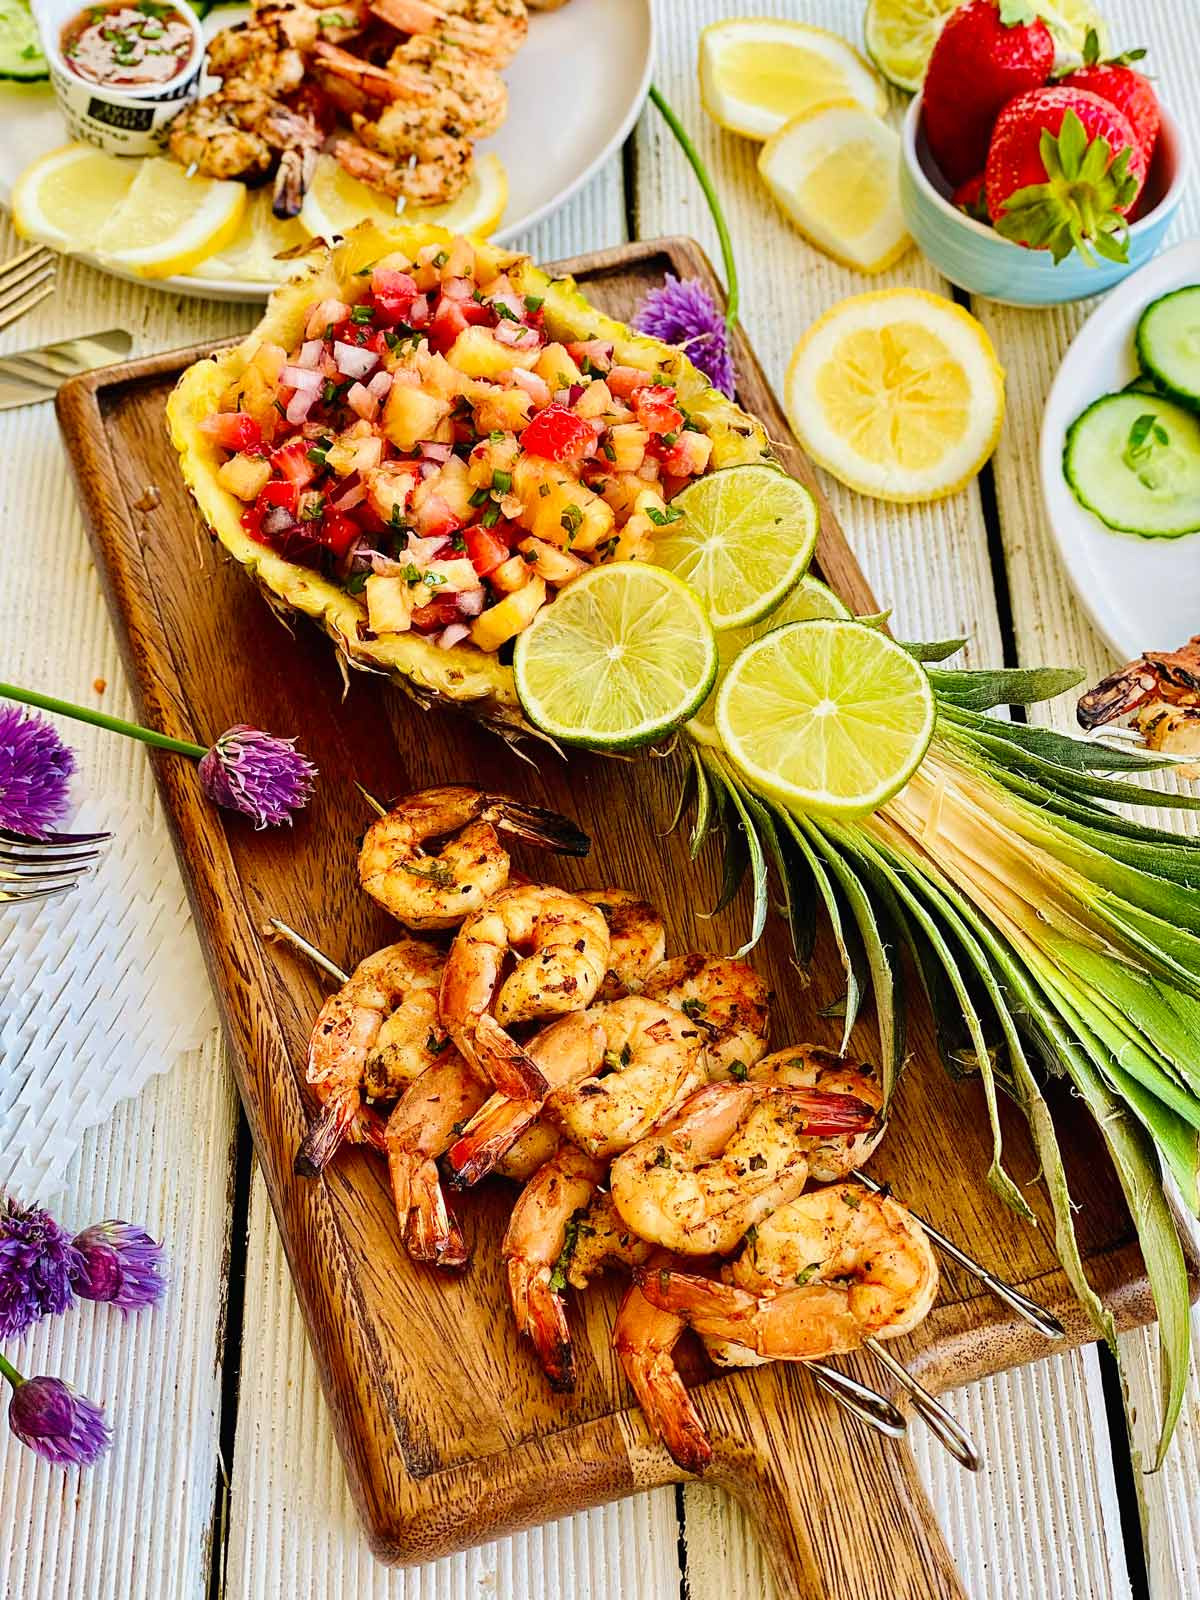 Pineapple mango salsa on a wooden board with grilled prawns next to it